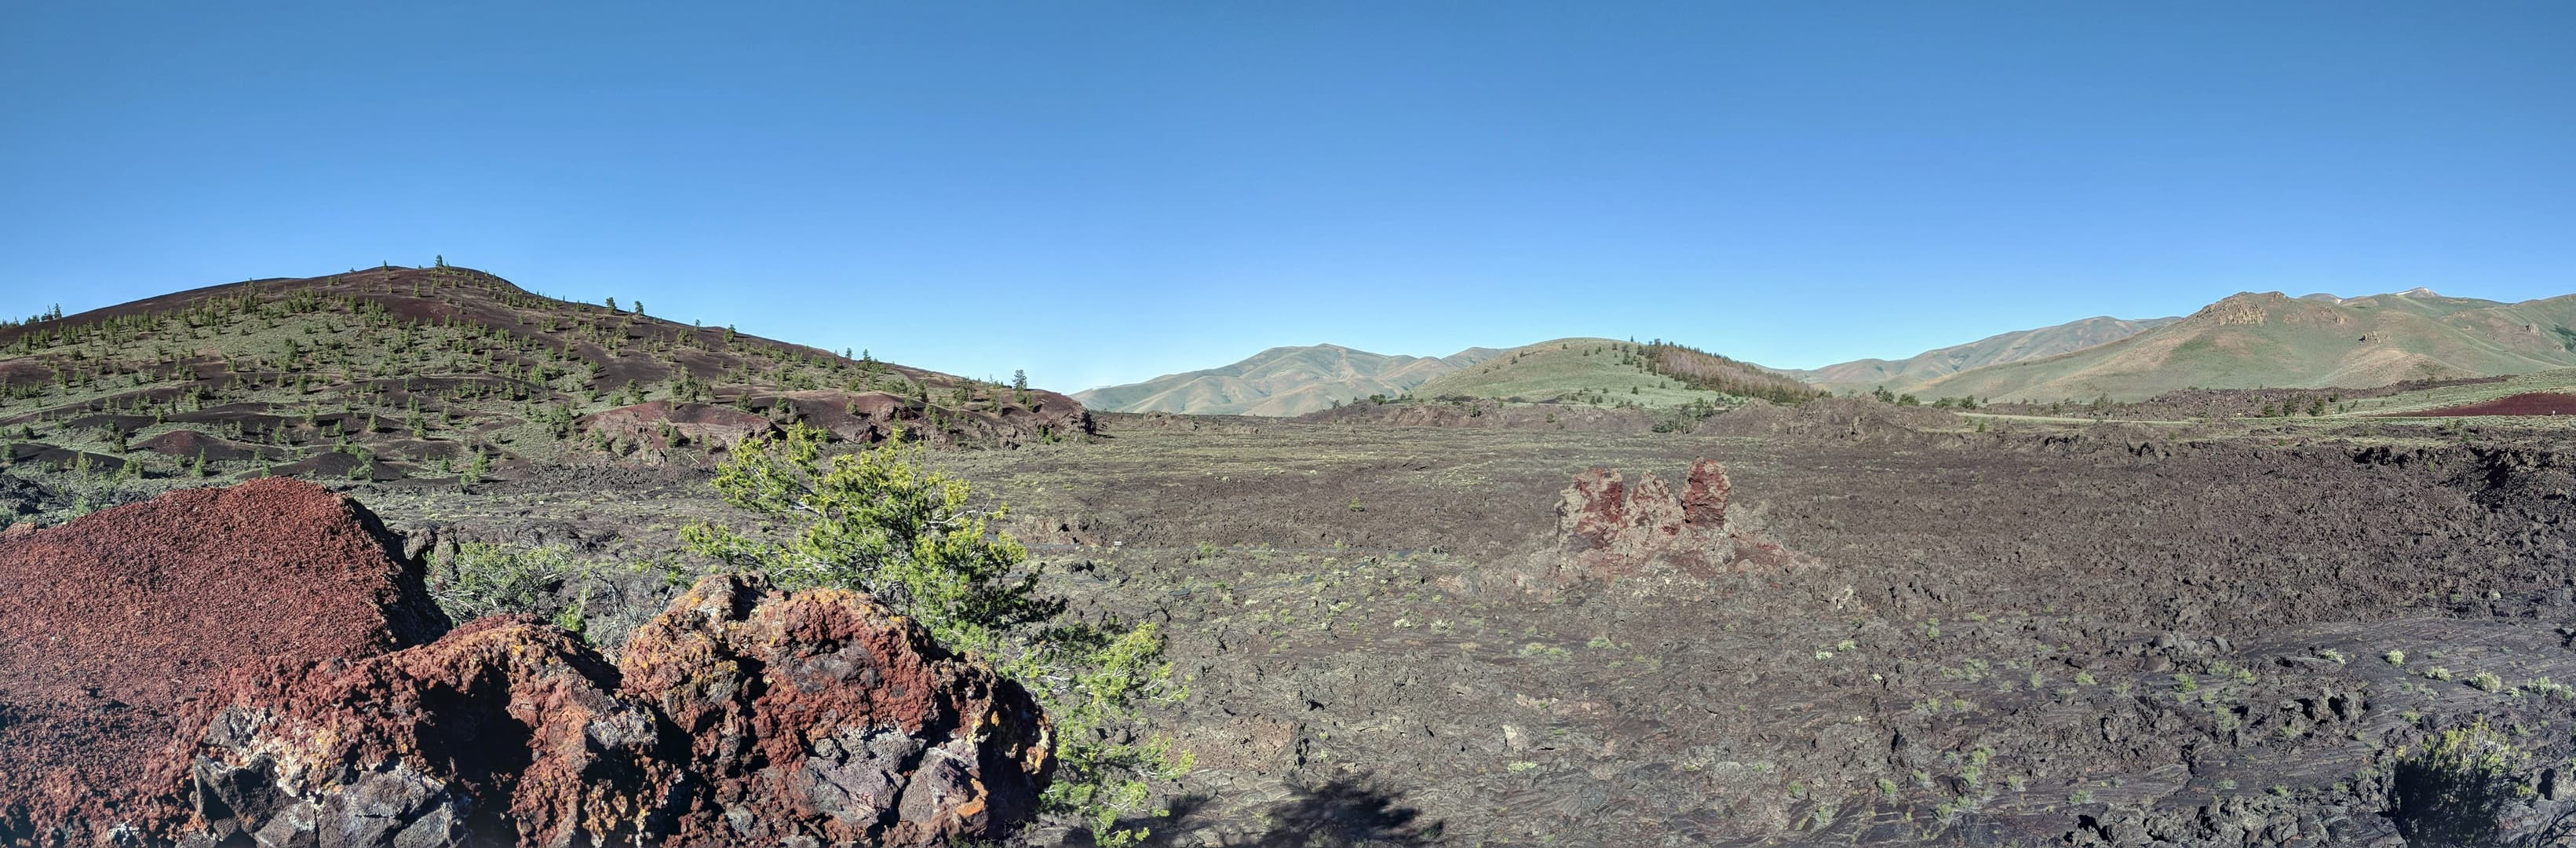 A black, jagged lava field, barely colonized by desert scrub. Three large, red rock pillars rise from it. In the distance are a set of low, scrub- and pine-covered rises of obvious volcanic origin.